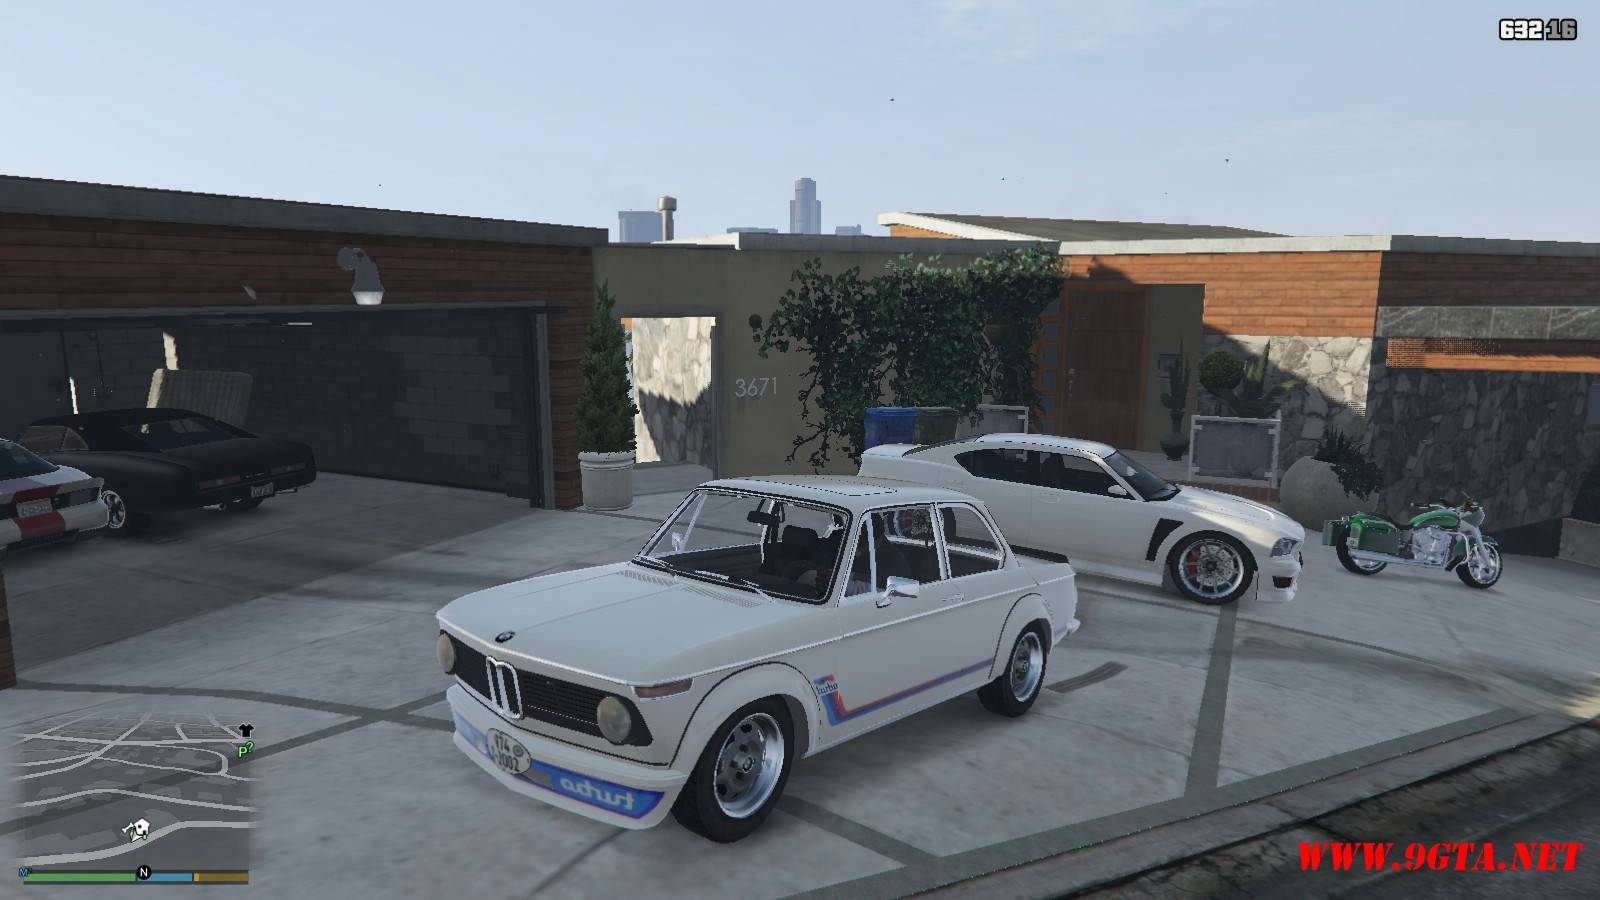 2002 BMW Turbo Mod For GTA5 (1)